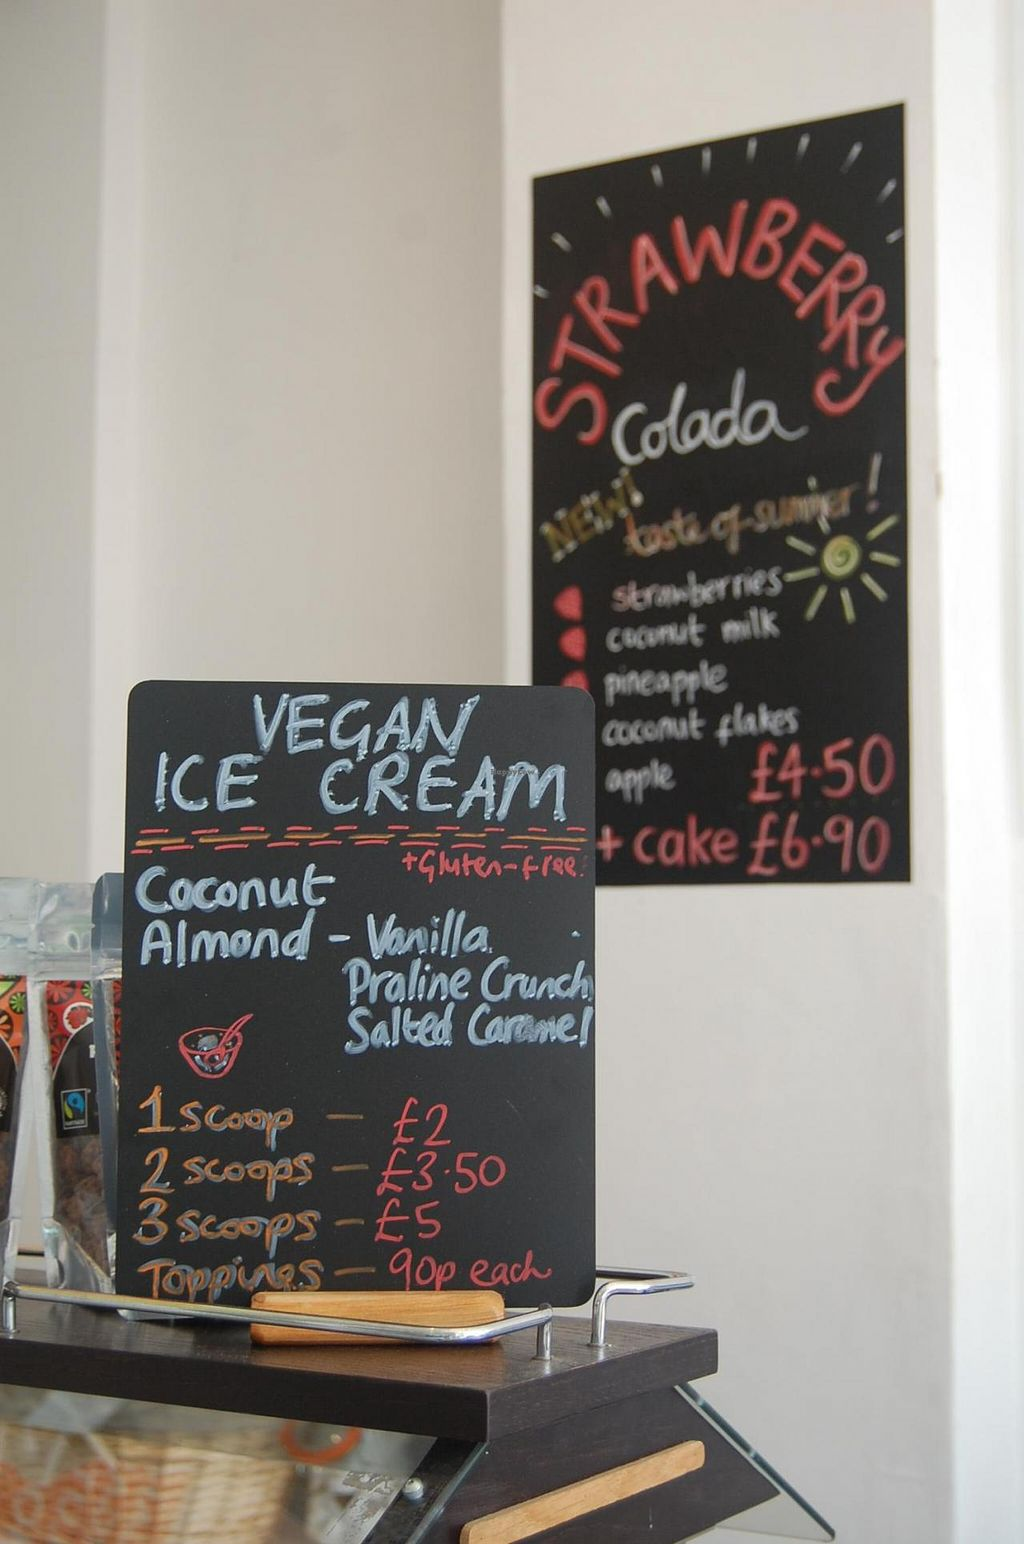 """Photo of Spa Juice Bar - Greenwich  by <a href=""""/members/profile/Clare"""">Clare</a> <br/>Vegan Ice-cream and shakes menu <br/> June 18, 2015  - <a href='/contact/abuse/image/52958/106412'>Report</a>"""